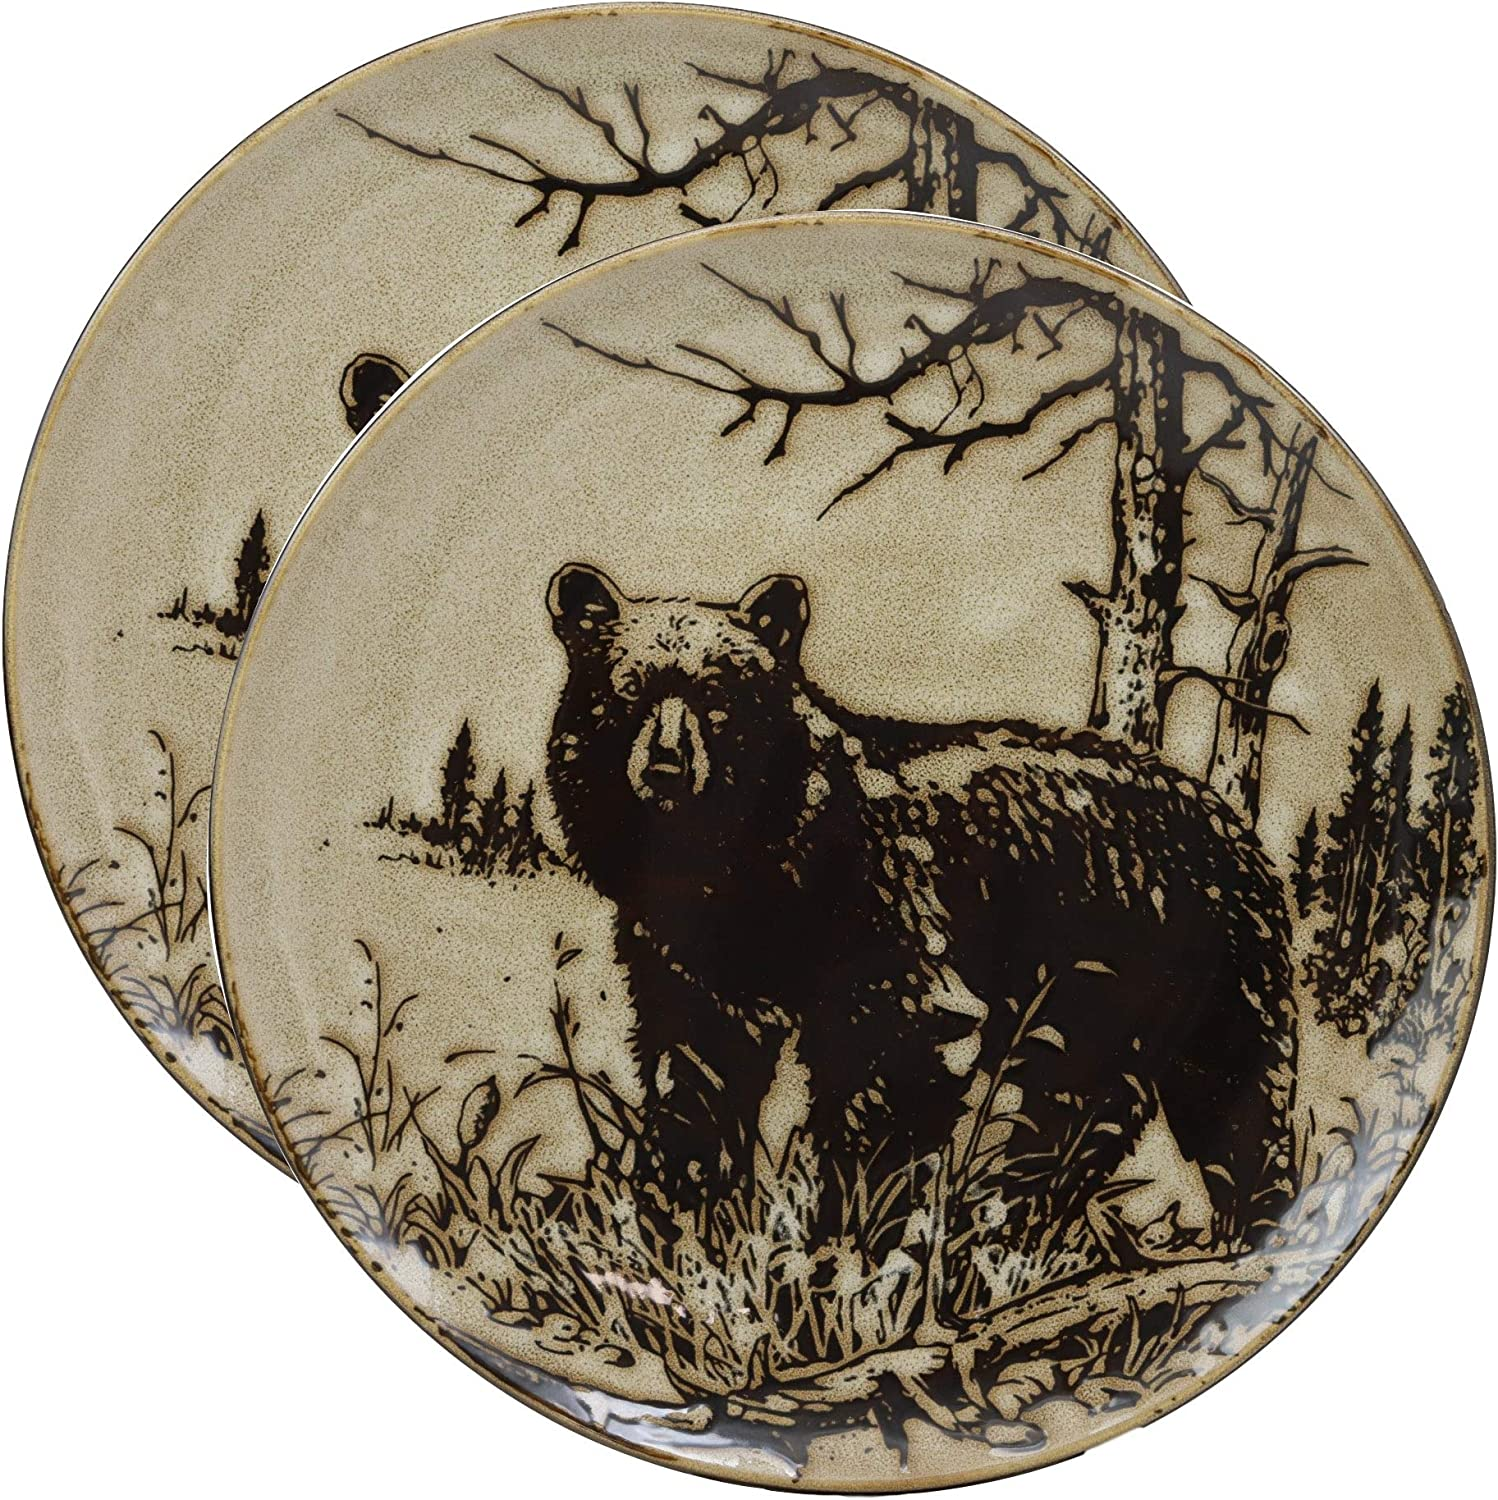 "Ebros Animal Wildlife Woodland Forest Black Bear Abstract Art Large Round Dinner Plate Set of 2 11"" Diameter Grizzly Bears Plates Dishwasher And Microwave Safe Dinnerware Dining Table Dishes Decors"